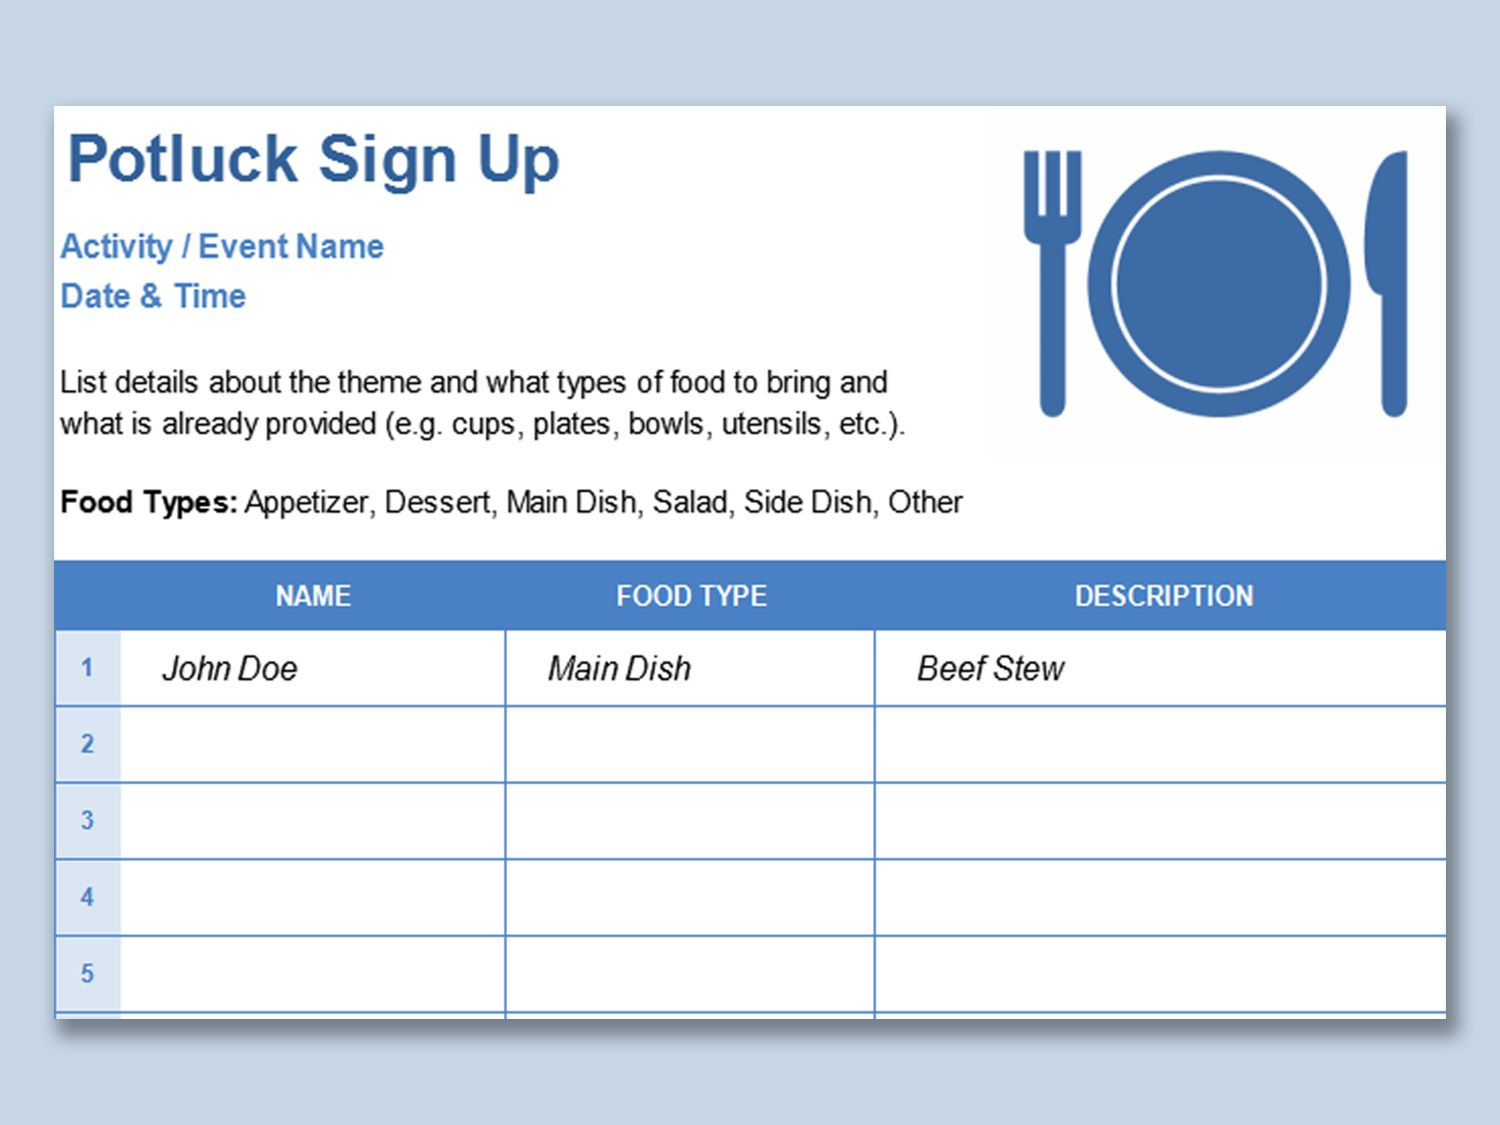 001 Outstanding Free Signup Sheet Template Inspiration  Sign Up For Potluck Google Doc Volunteer InFull